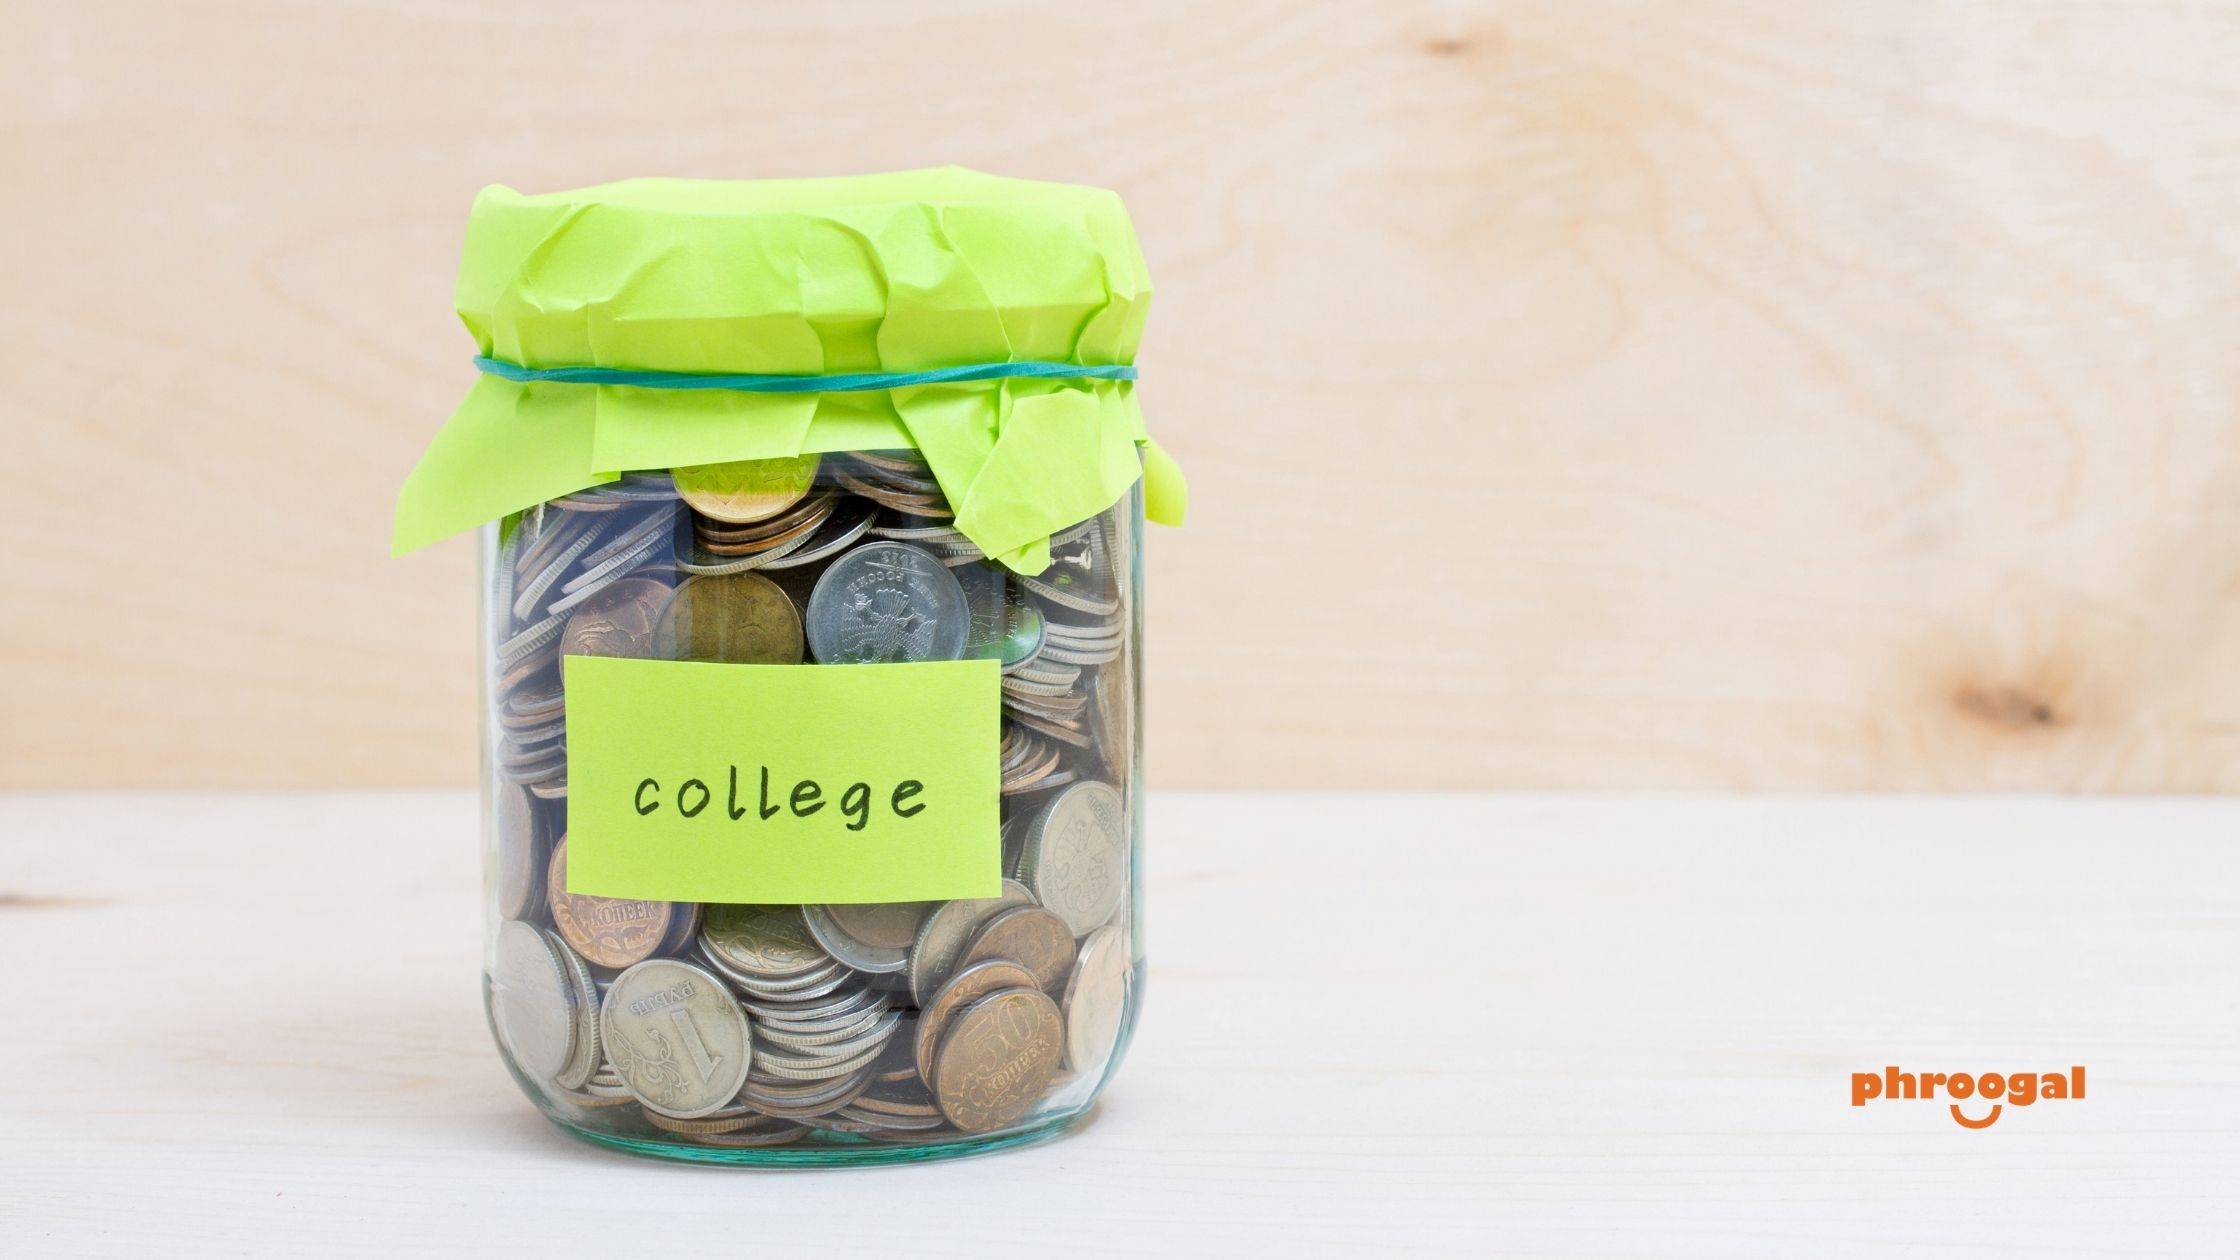 How to Pay for College phroogal